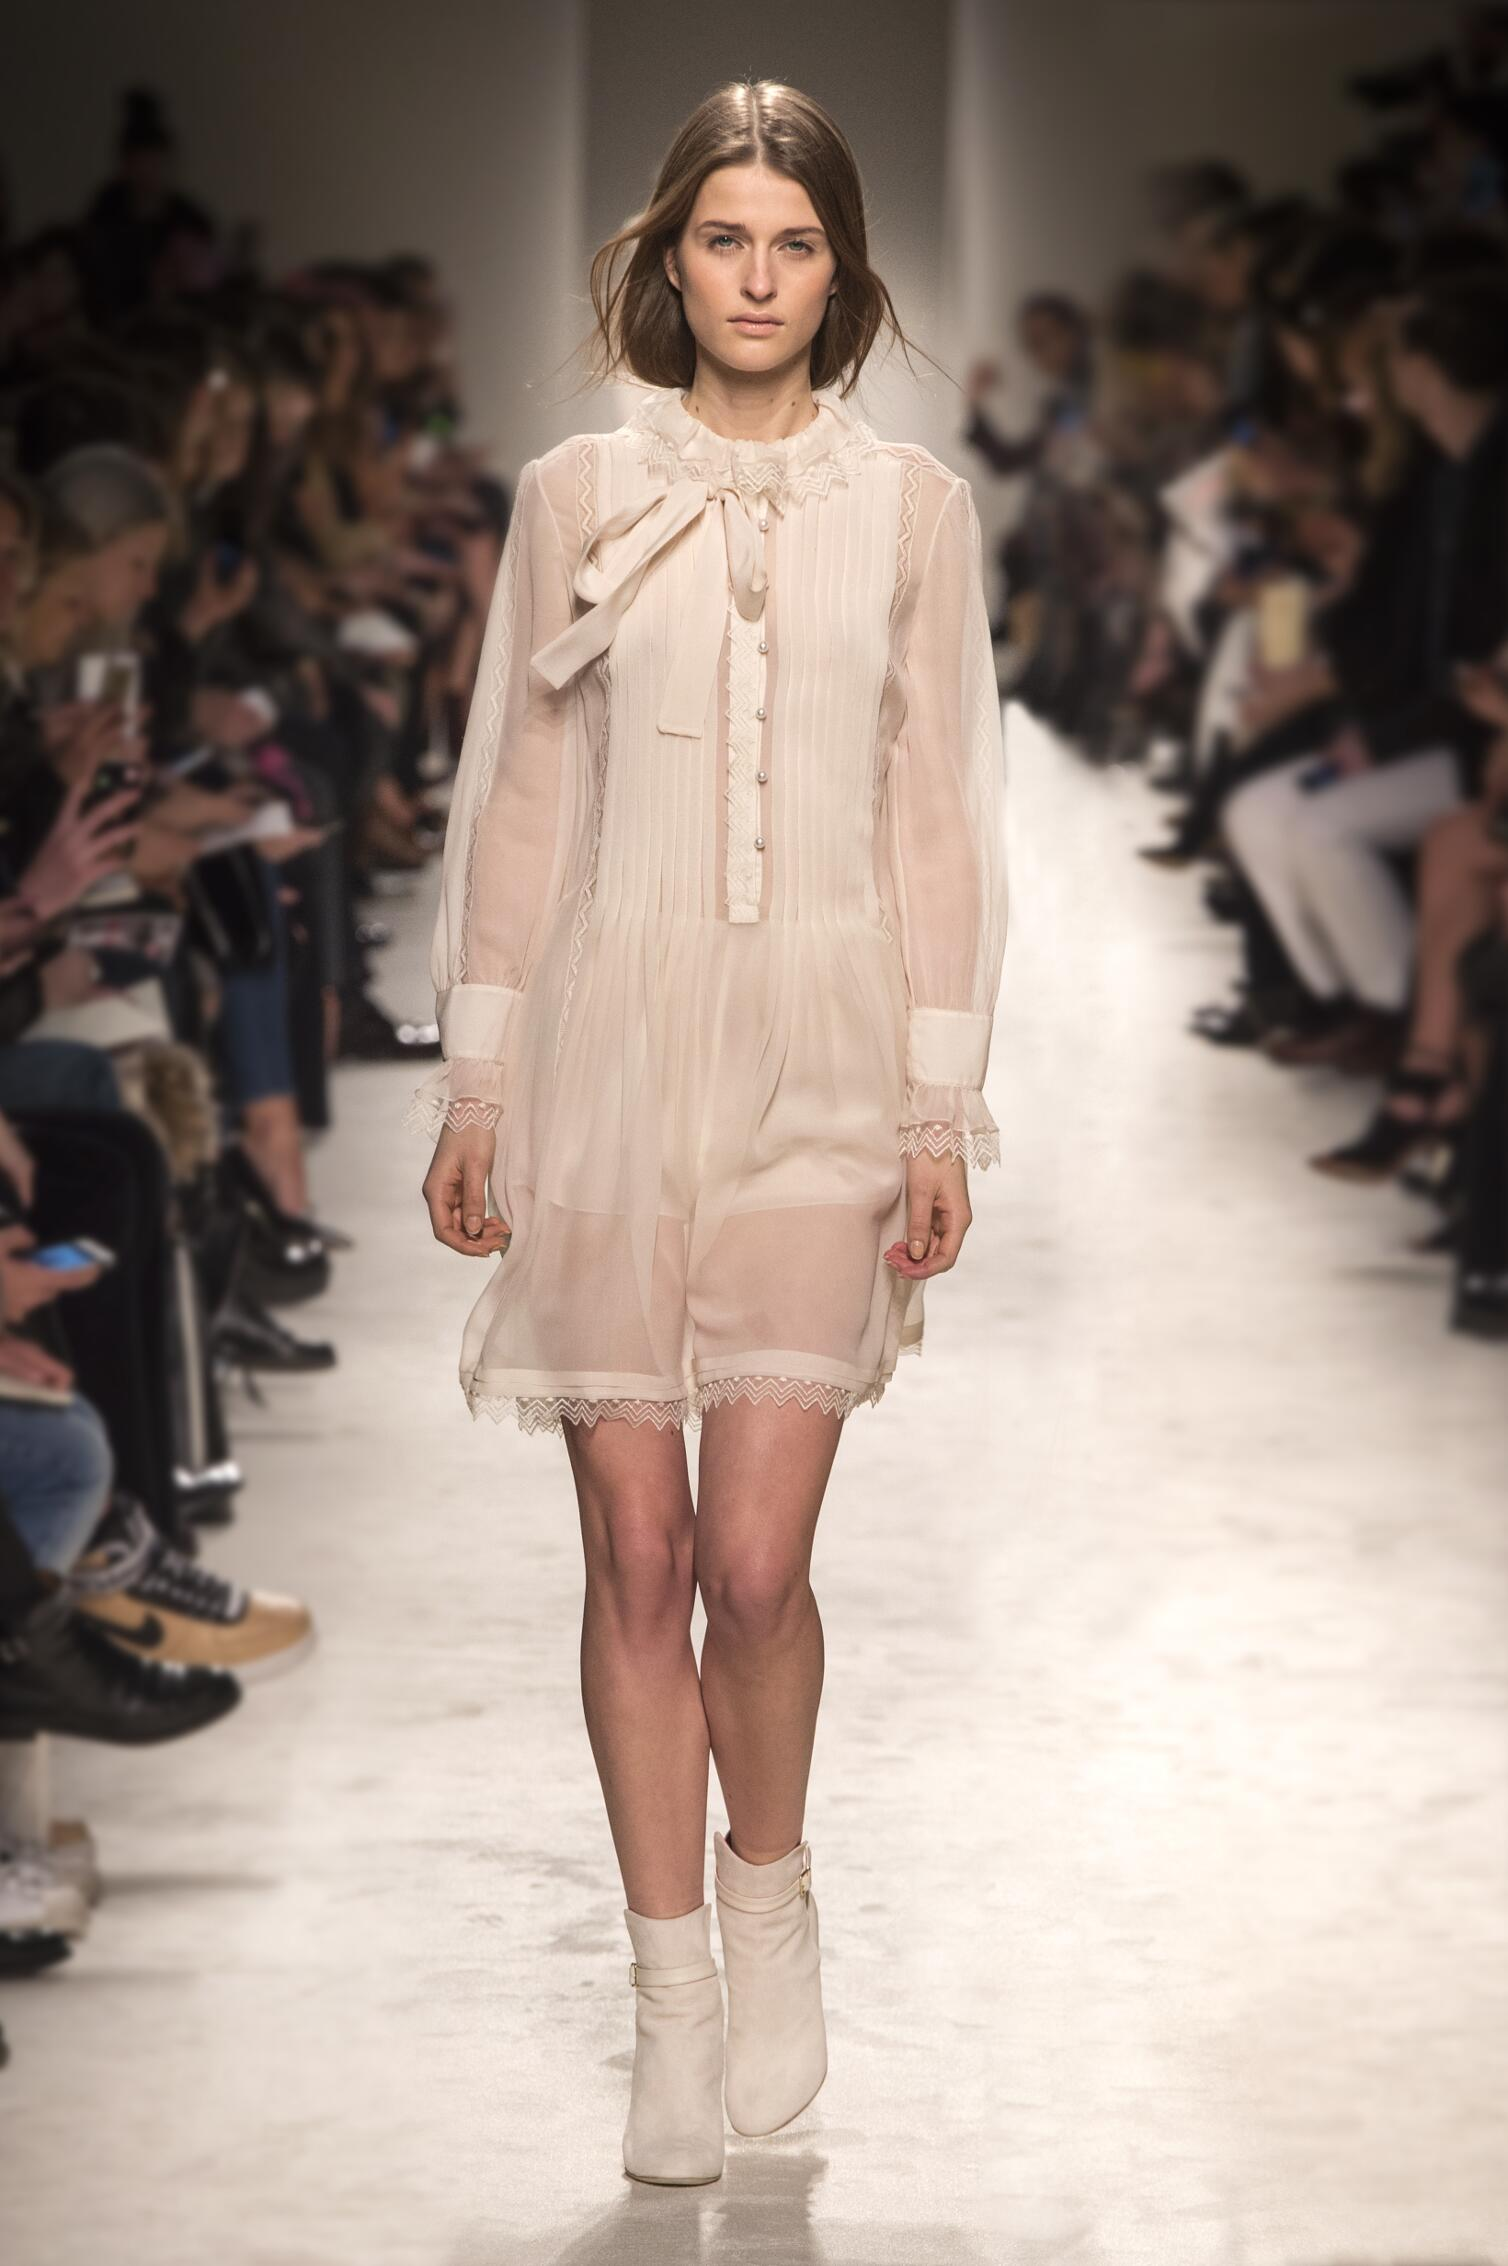 Winter 2015 Fashion Show Philosophy di Lorenzo Serafini Collection